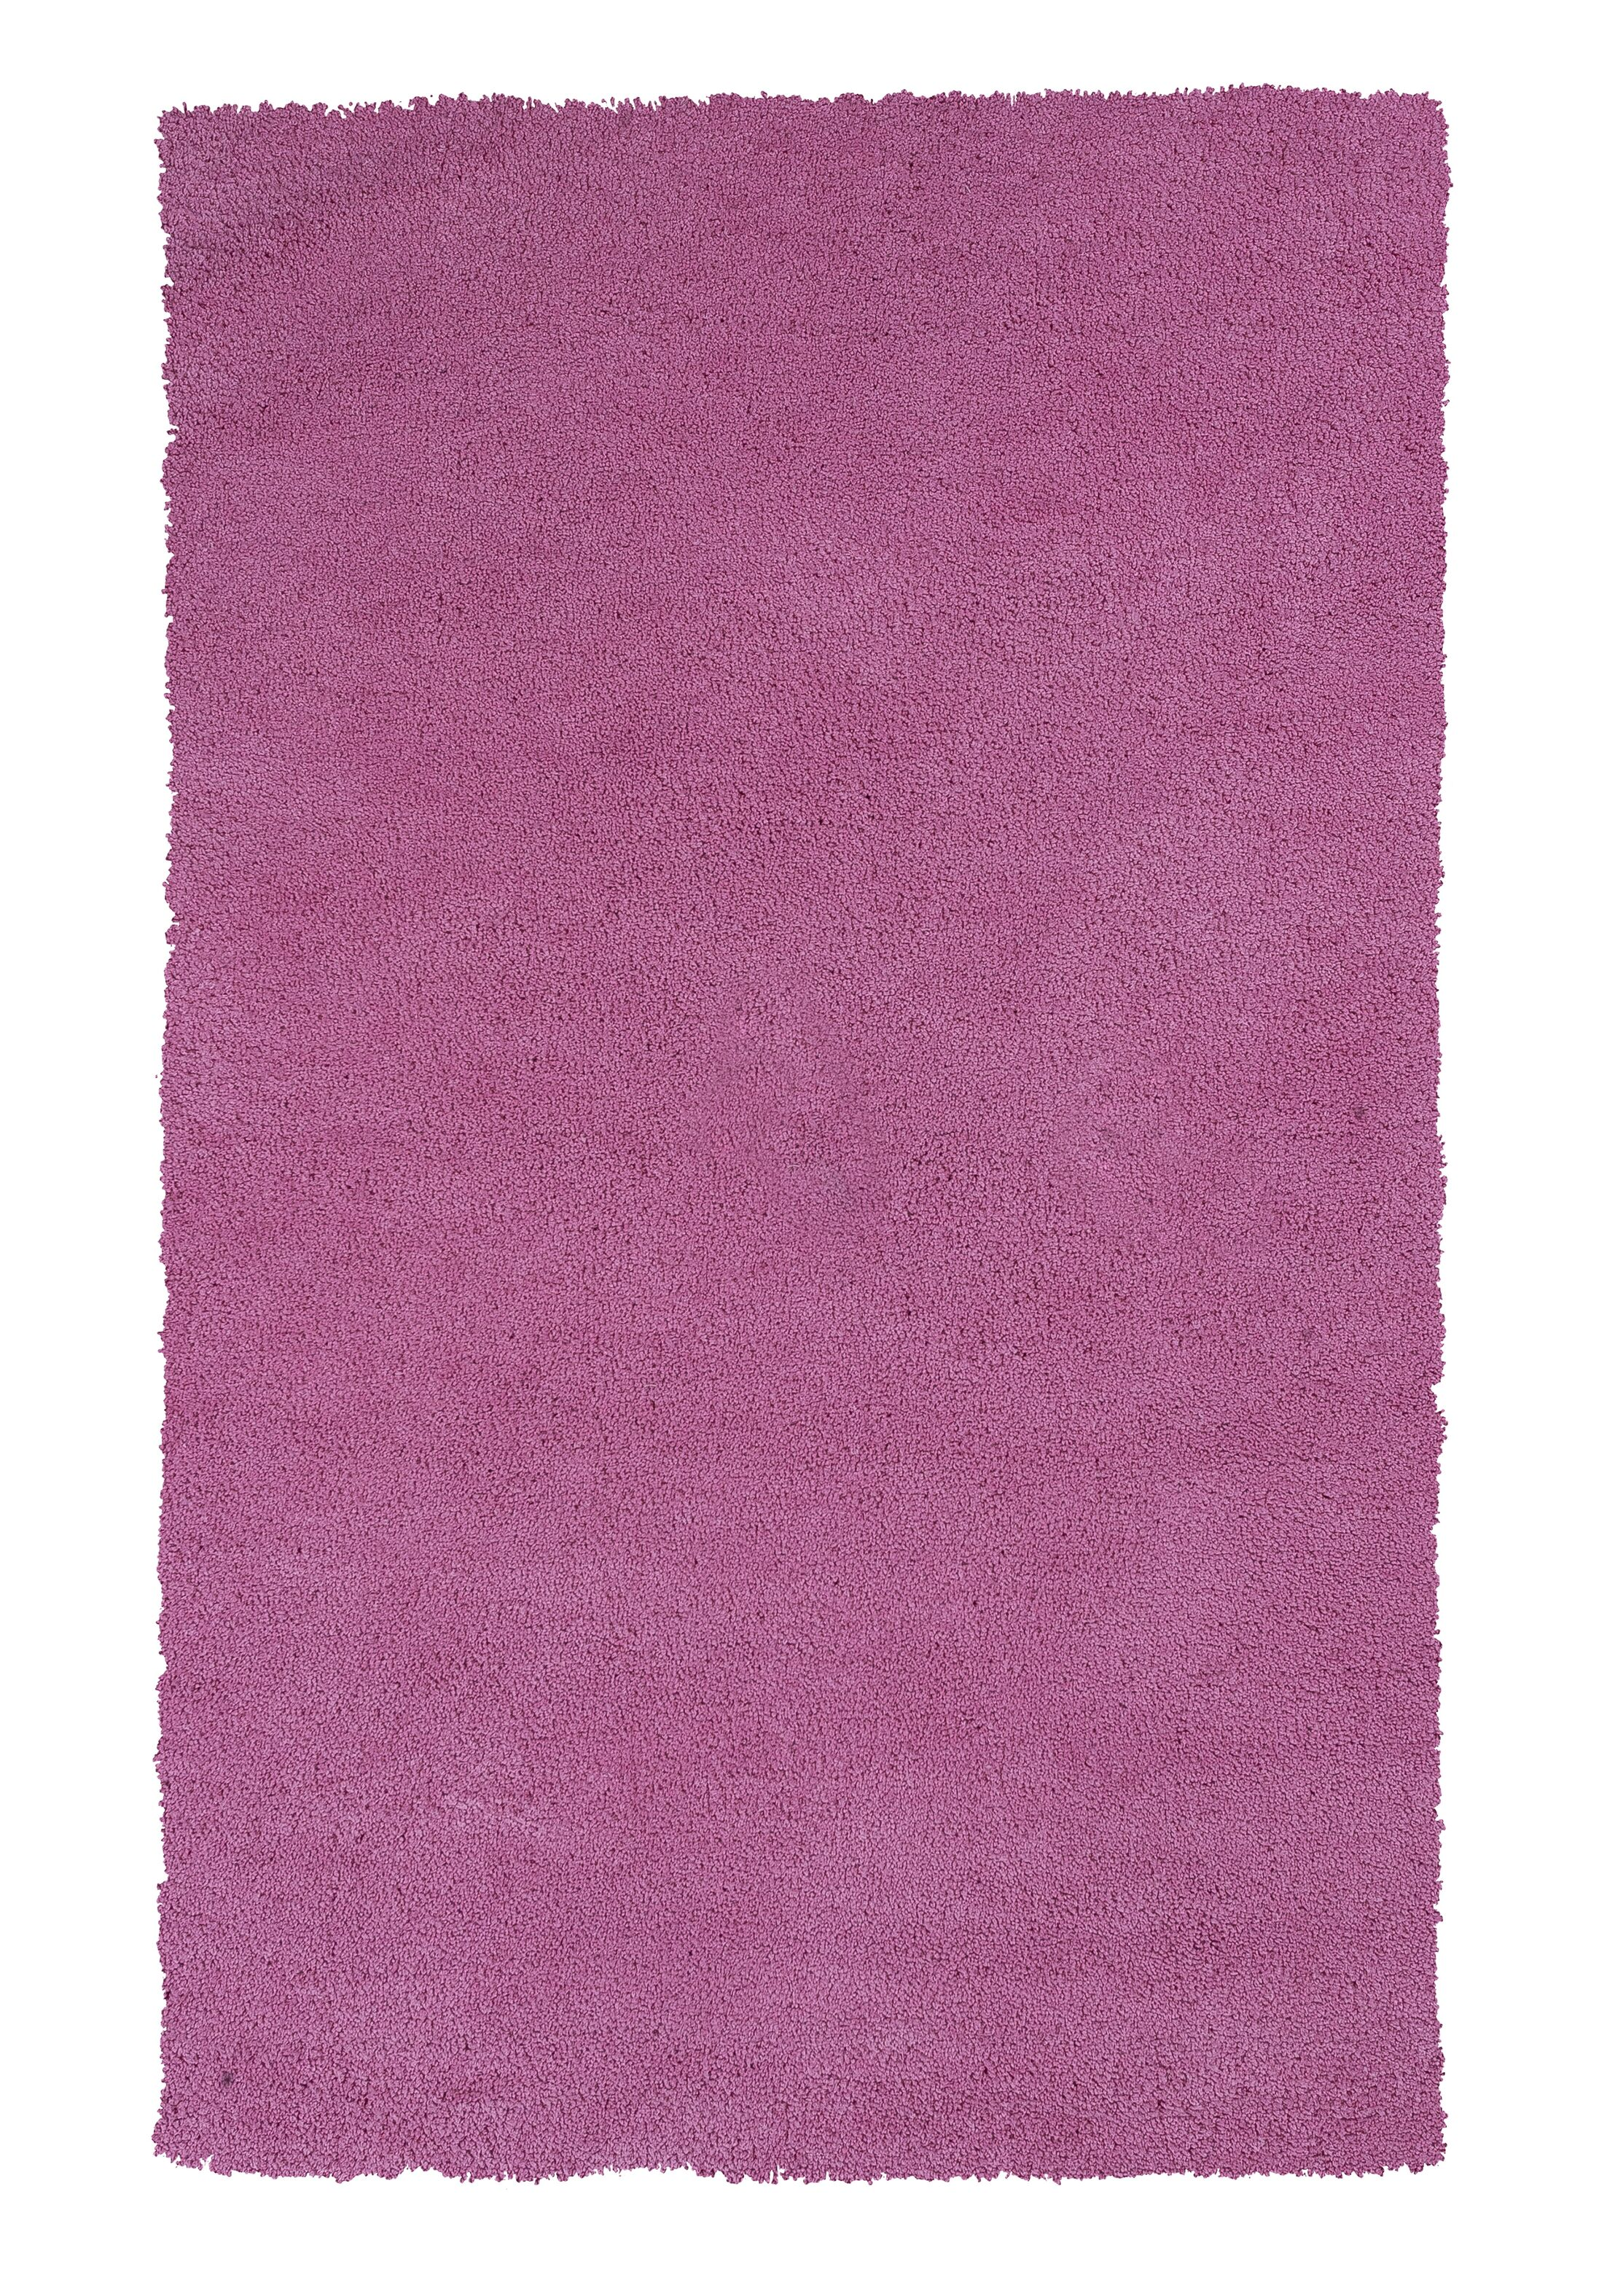 Bouvier Hot Pink Area Rug Rug Size: Rectangle 8' x 11'